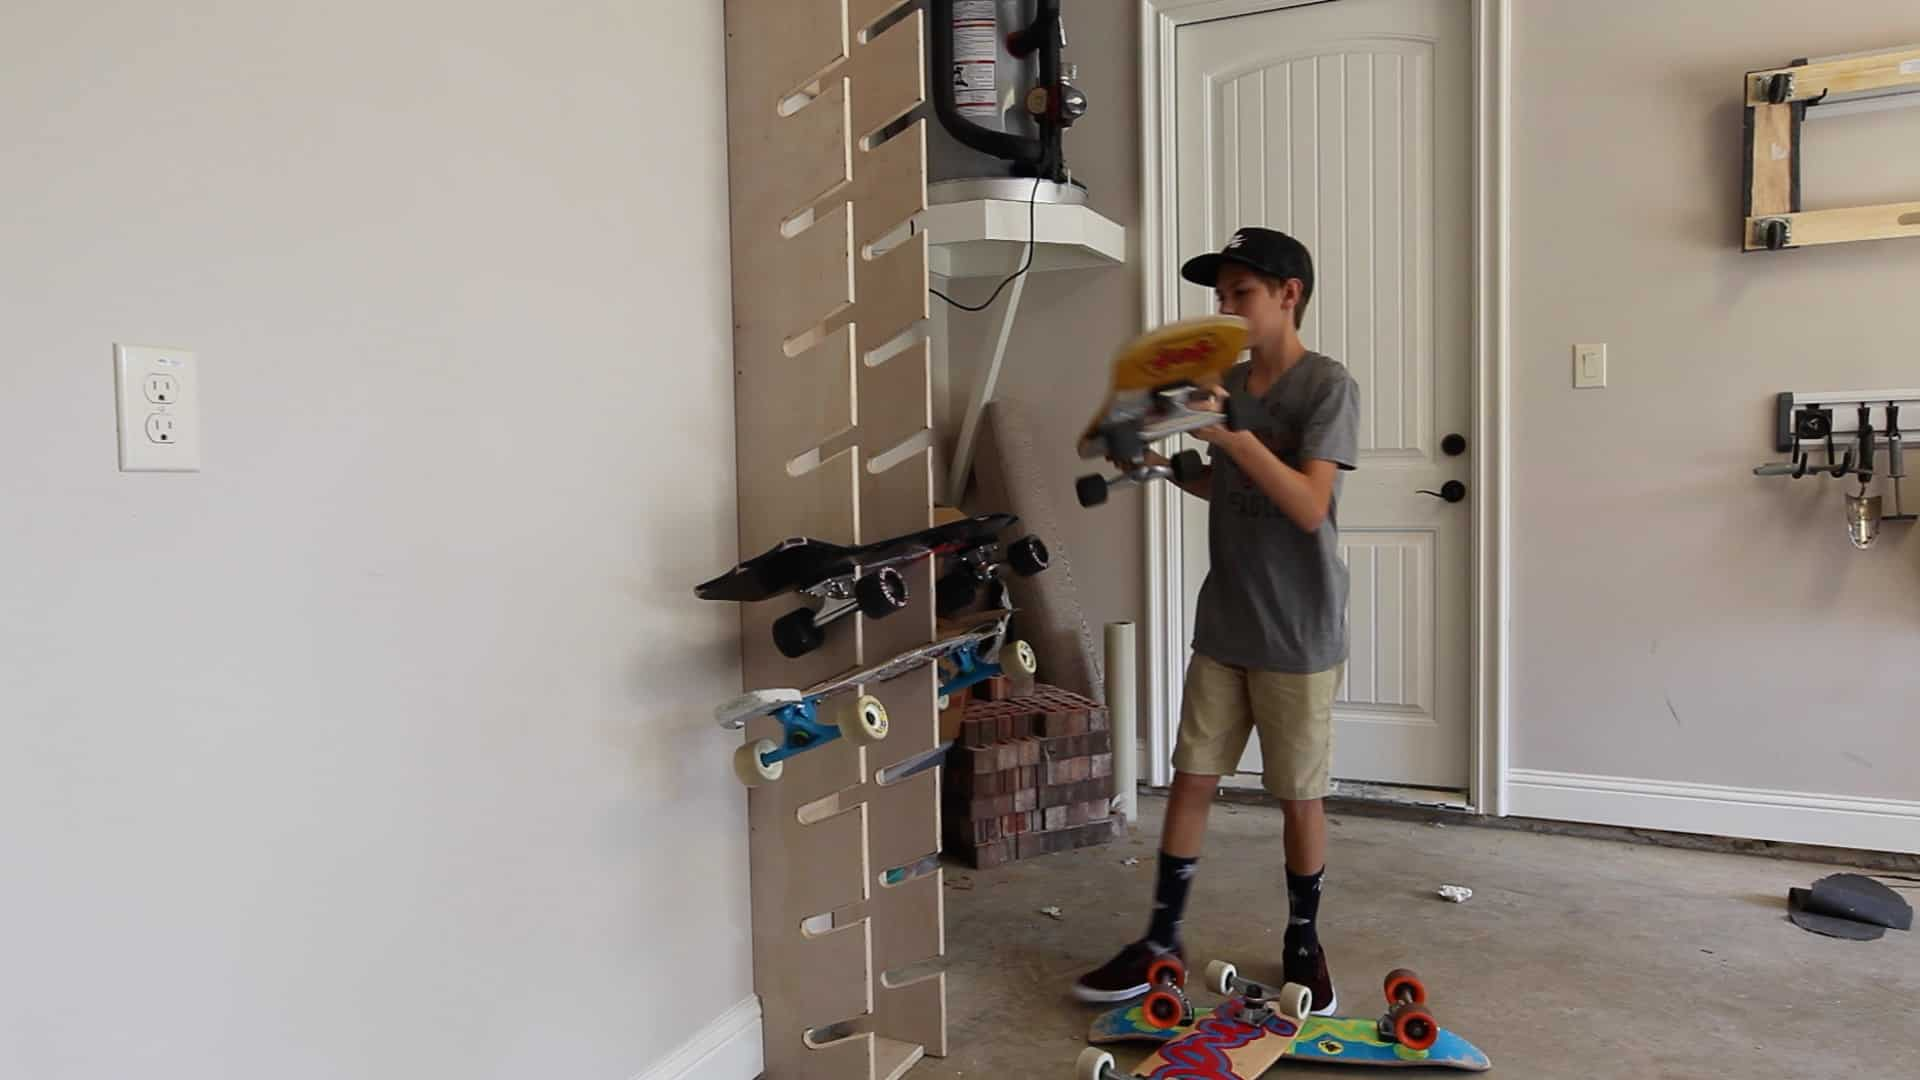 How To Make A Skateboard Rack The Geek Pub